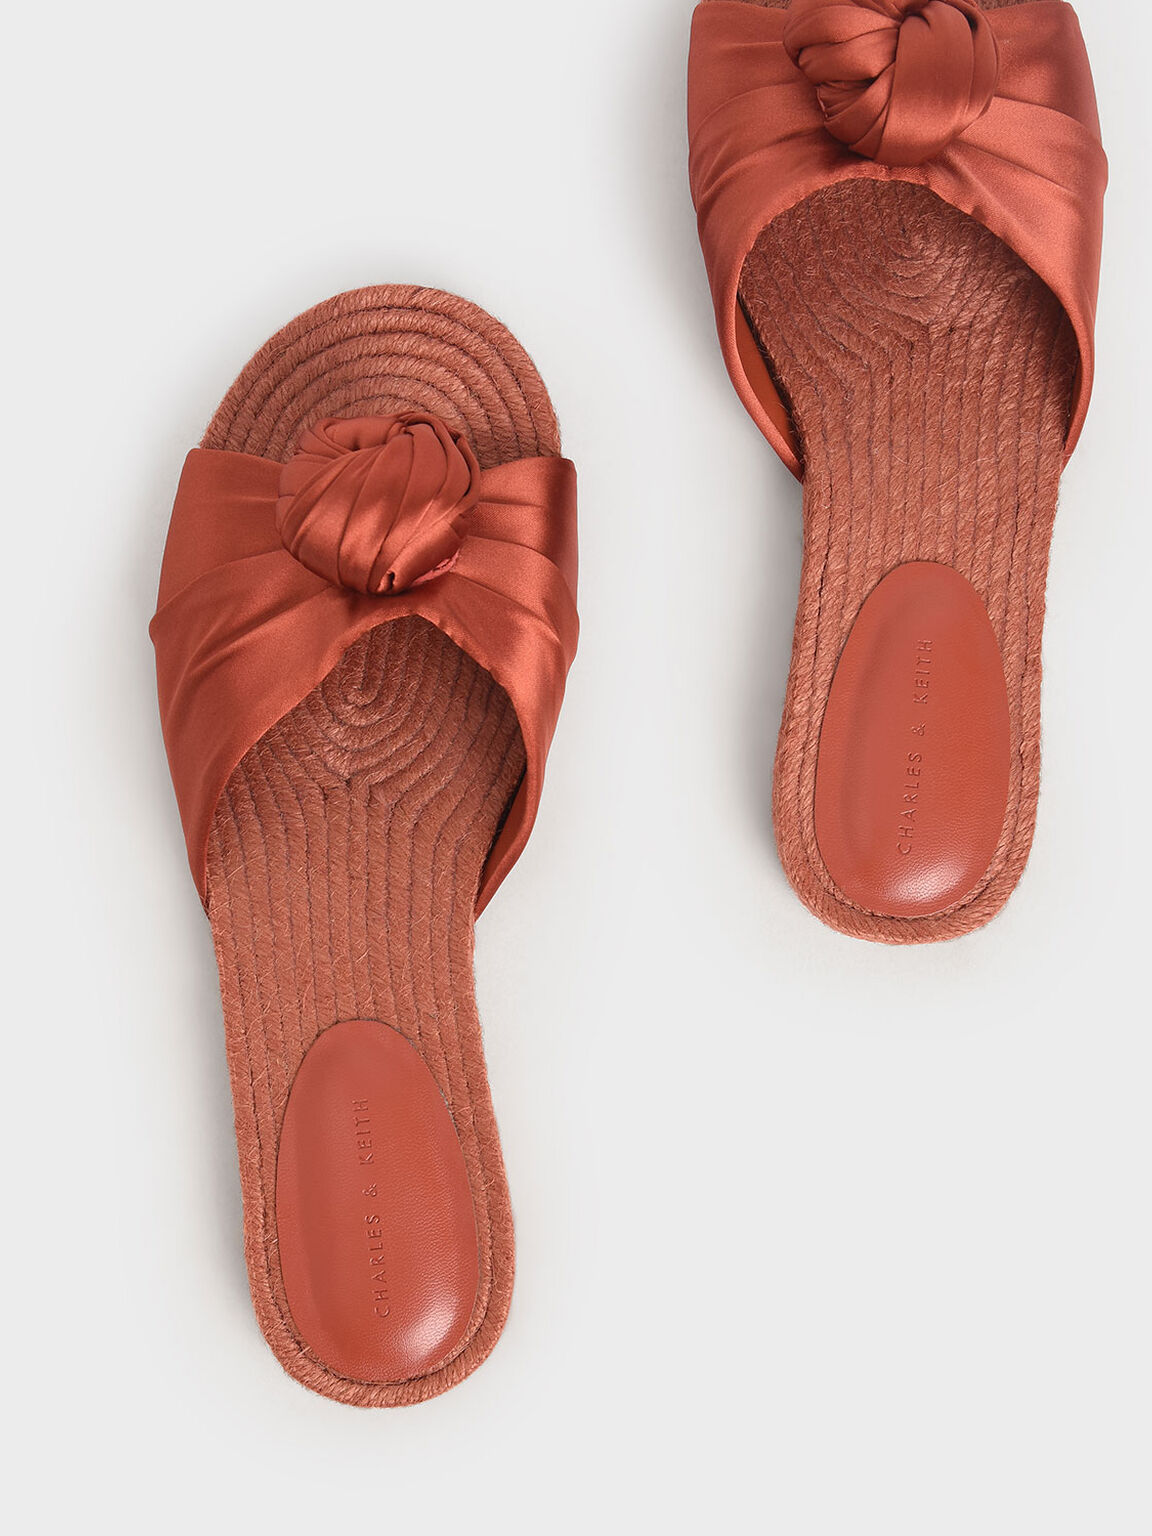 Satin Knot Espadrille Slide Sandals, Orange, hi-res